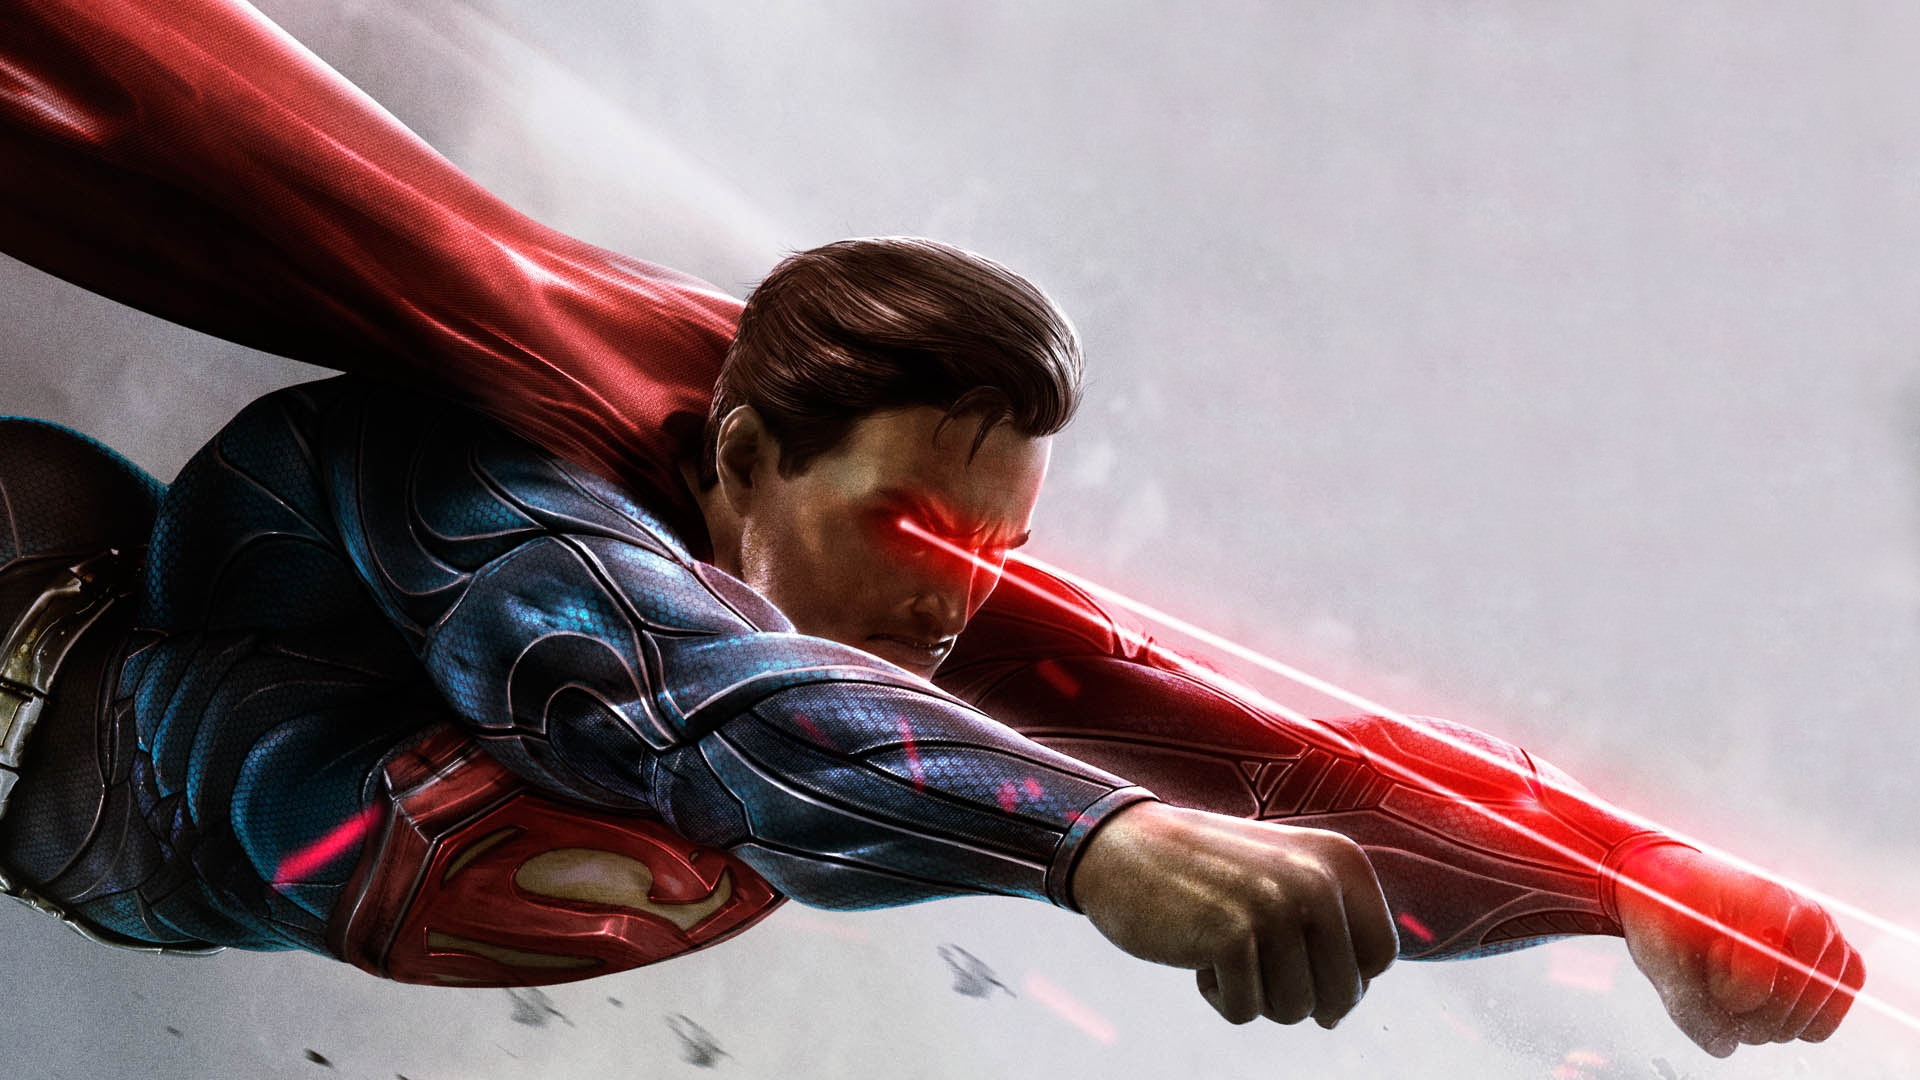 Latest Superman Vs Batman Wallpapers In Hd For Desktop 1920x1080